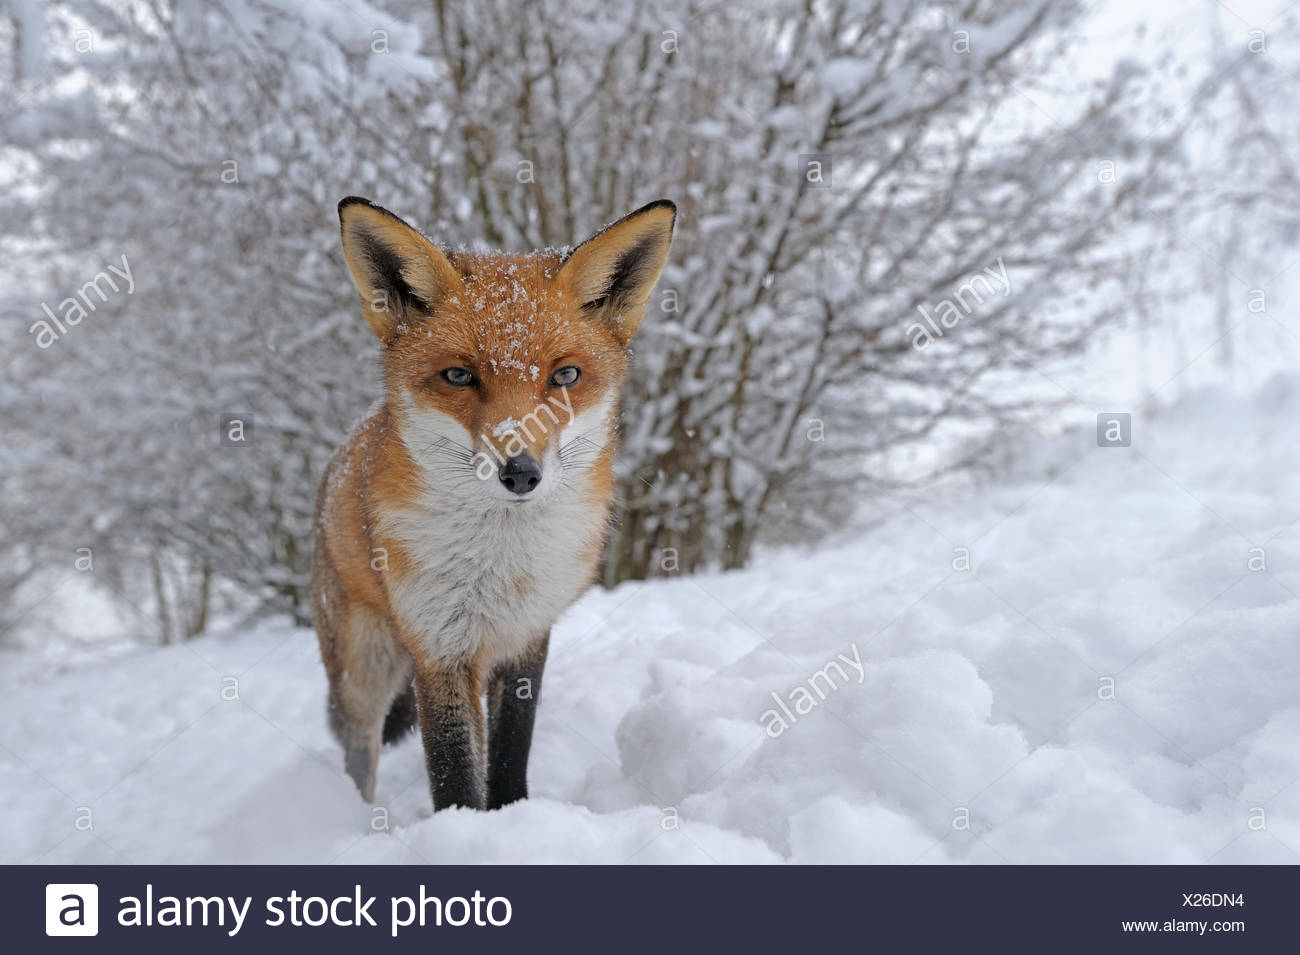 European Red Fox (Vulpes vulpes) dans la neige, UK, captive Photo Stock